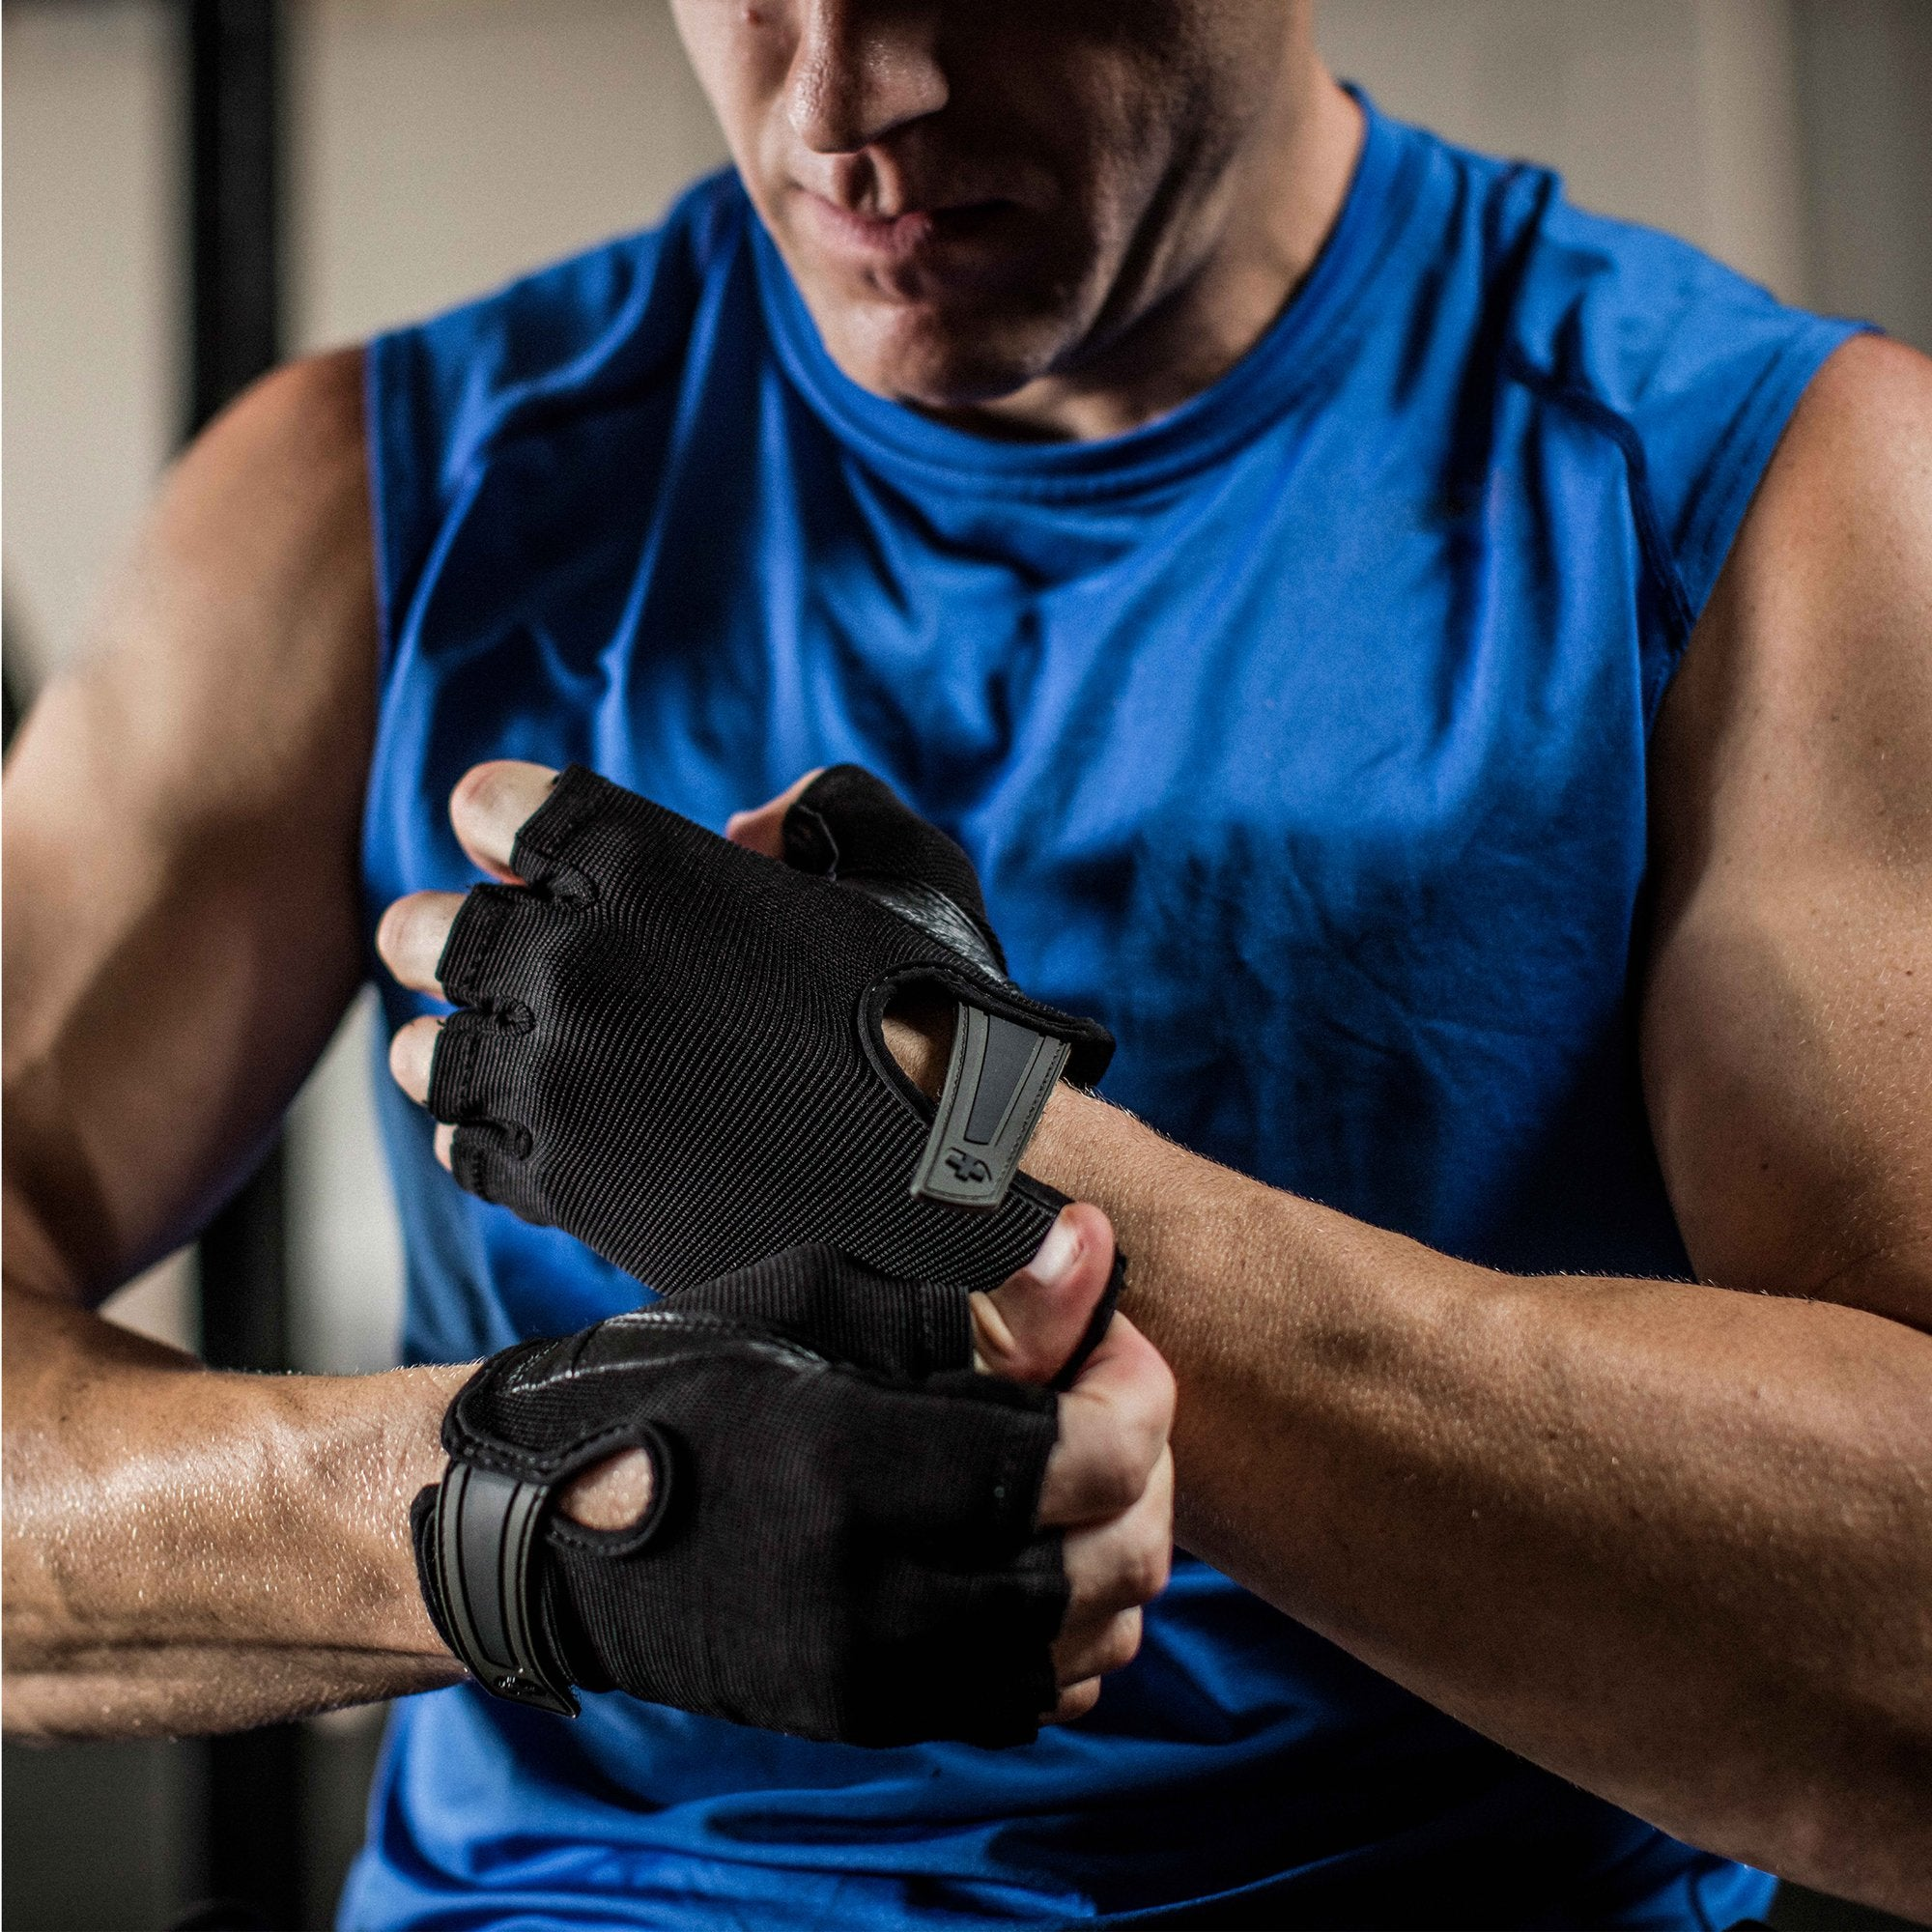 Harbinger Power Non-Wristwrap Weightlifting Gloves with StretchBack Mesh and Leather Palm (Pair), Medium - yrGear